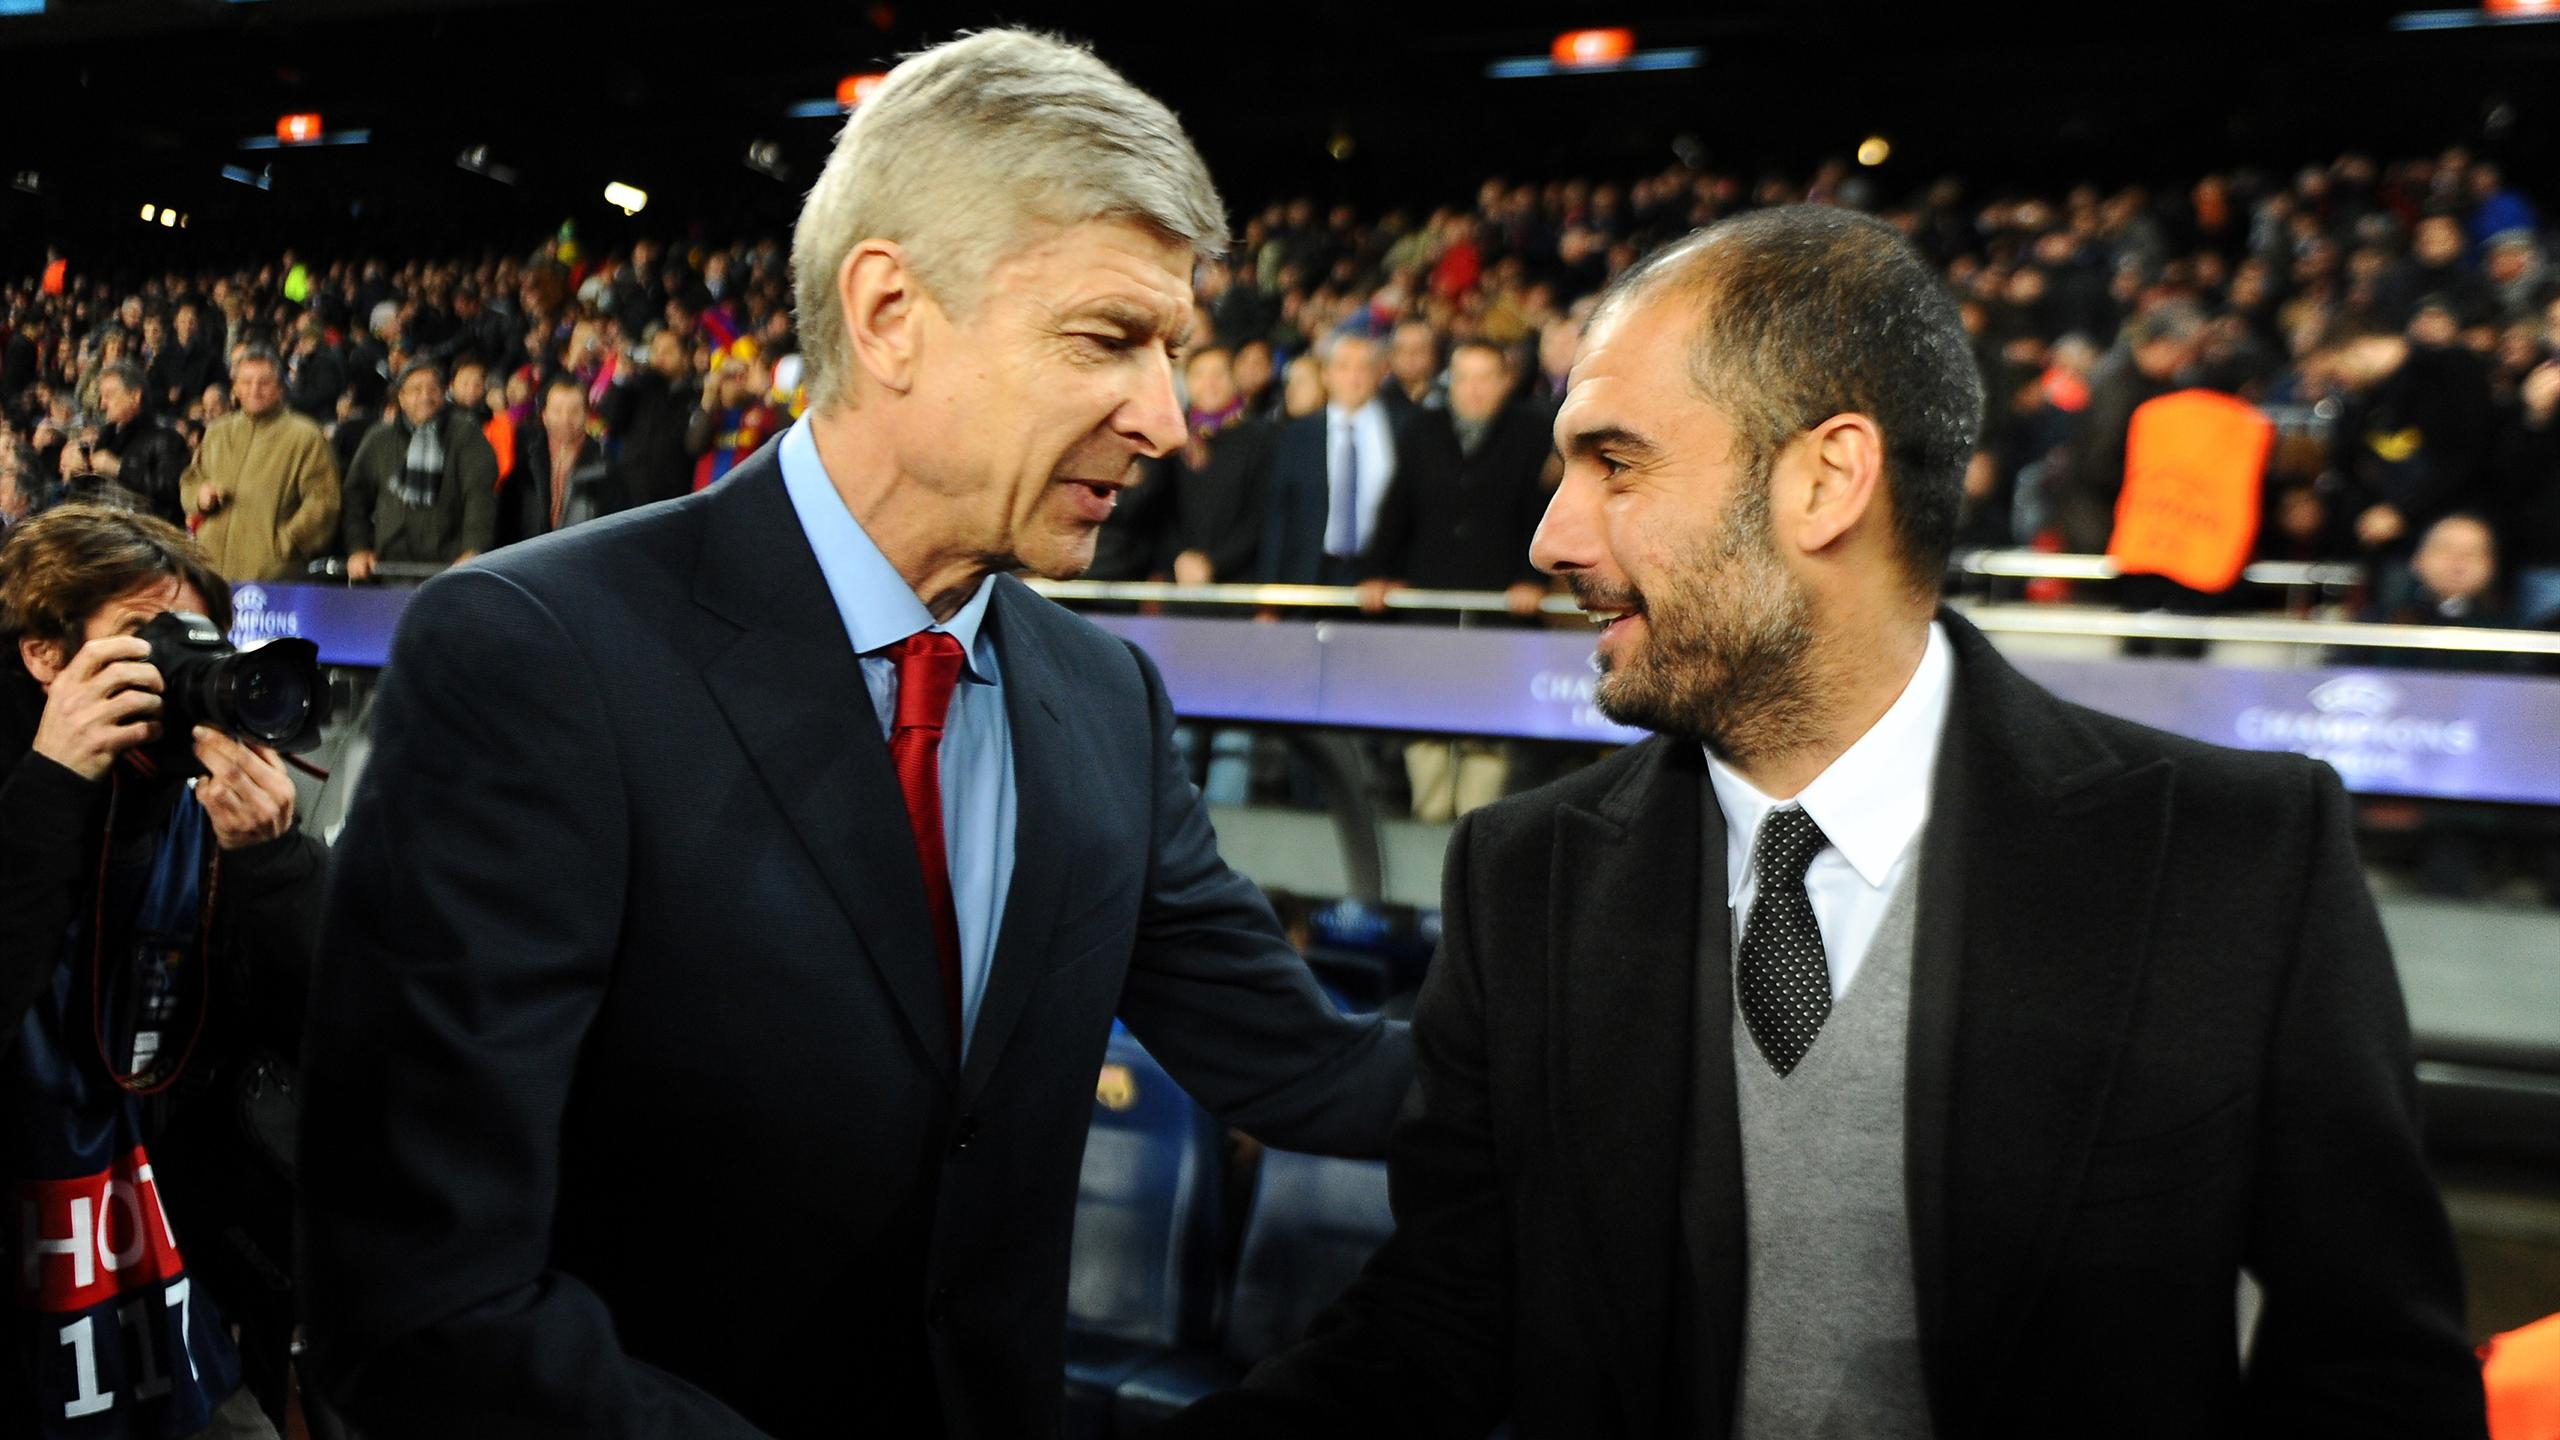 Barcelona's coach Pep Guardiola (R) welcomes Arsenal's French coach Arsène Wenger (L) before the Champions League